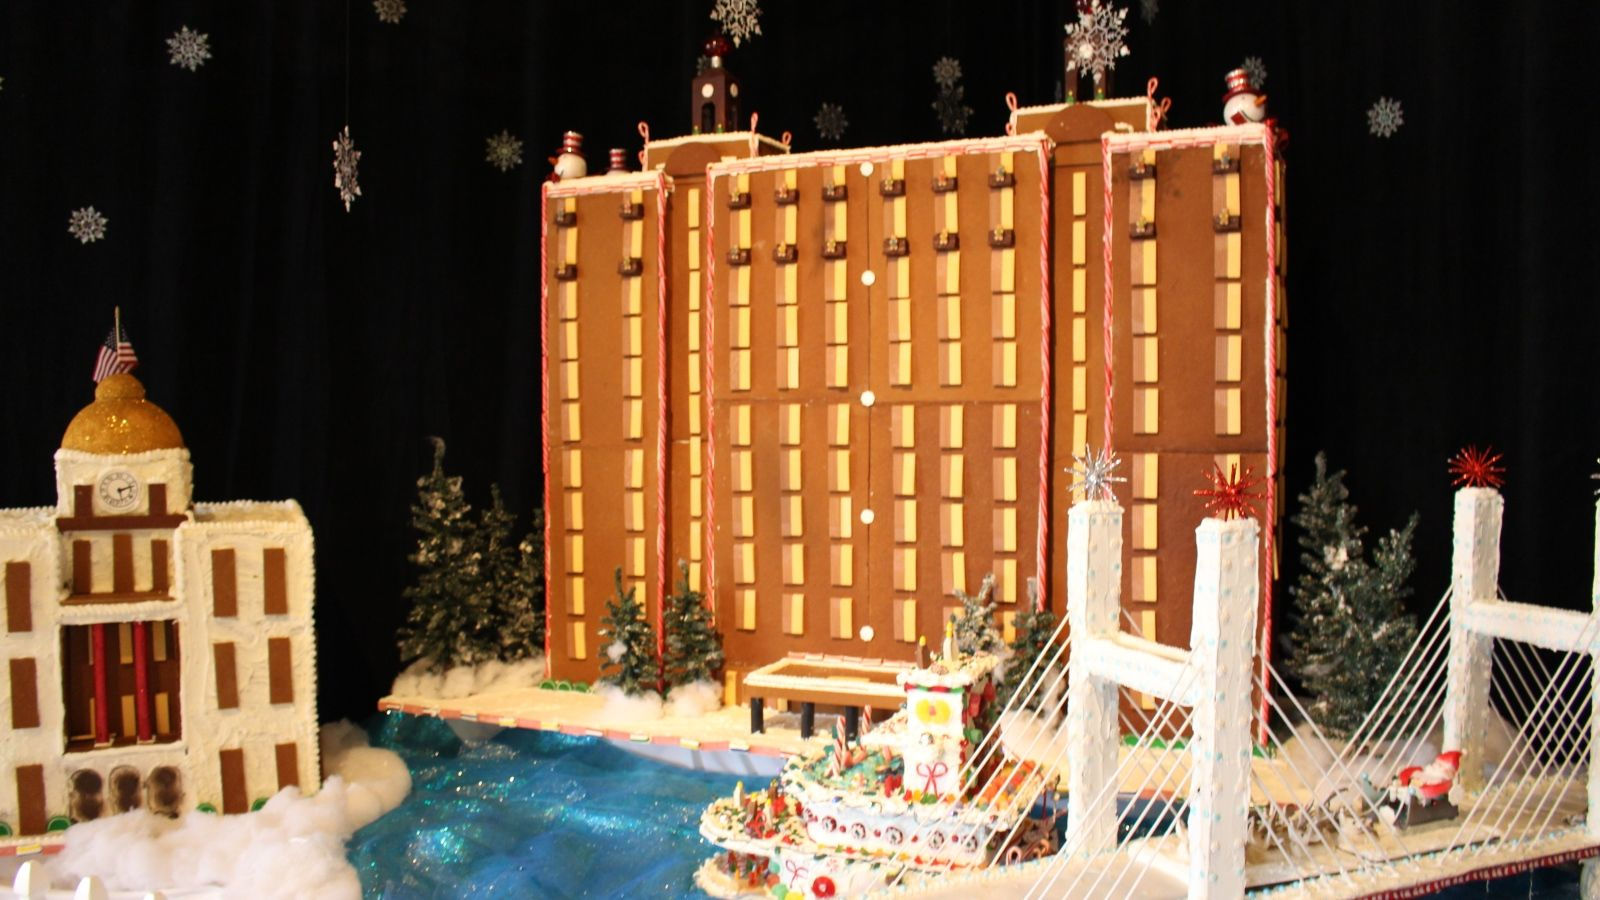 Westin Savannah Gingerbread Village 2016 Holidays Savannah